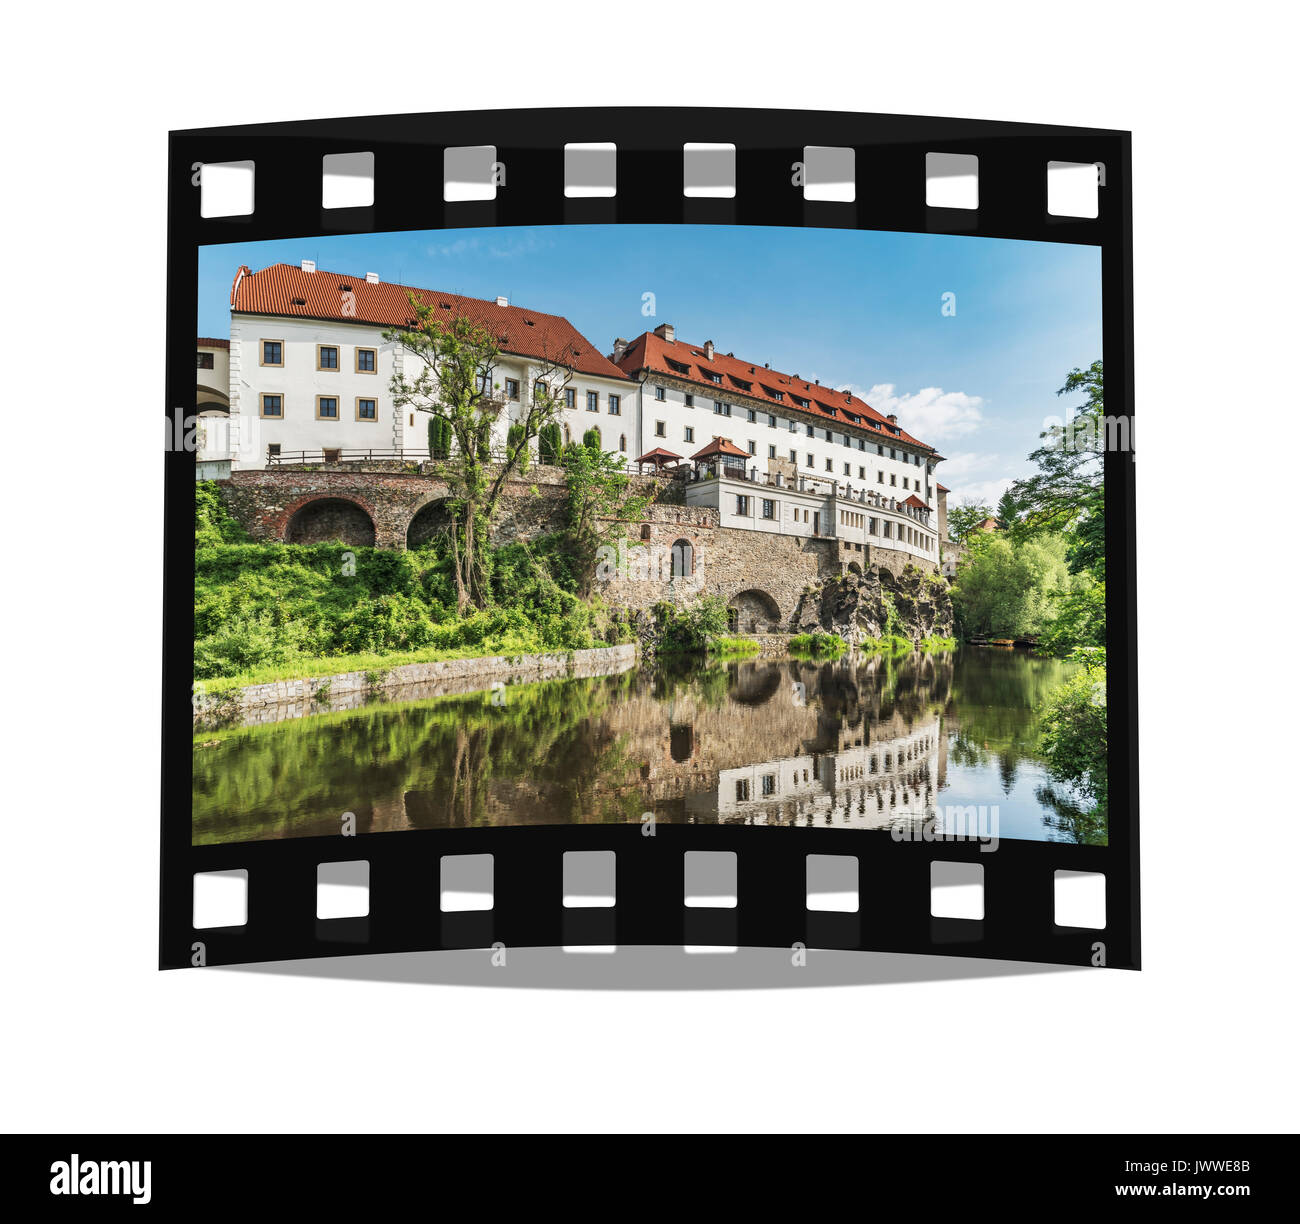 The building of the former Jesuit college is now the Hotel Ruze. On the left is the building of the Praelatur in Cesky Krumlov, Czech Republic, Europe - Stock Image